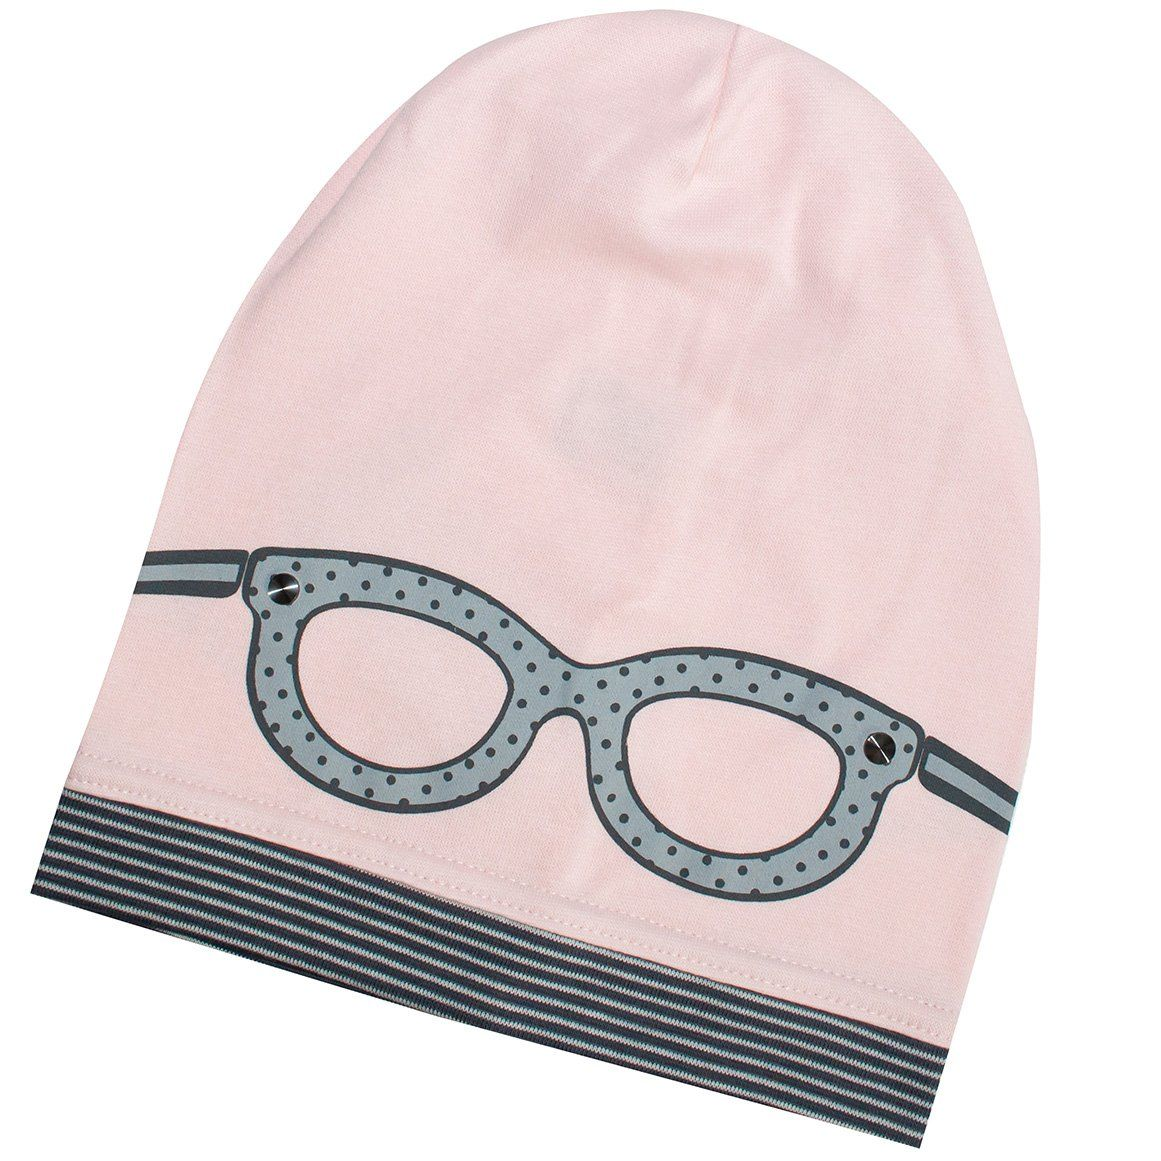 Light Pink Beanie with Gray Glasses Print | 34/064-LP